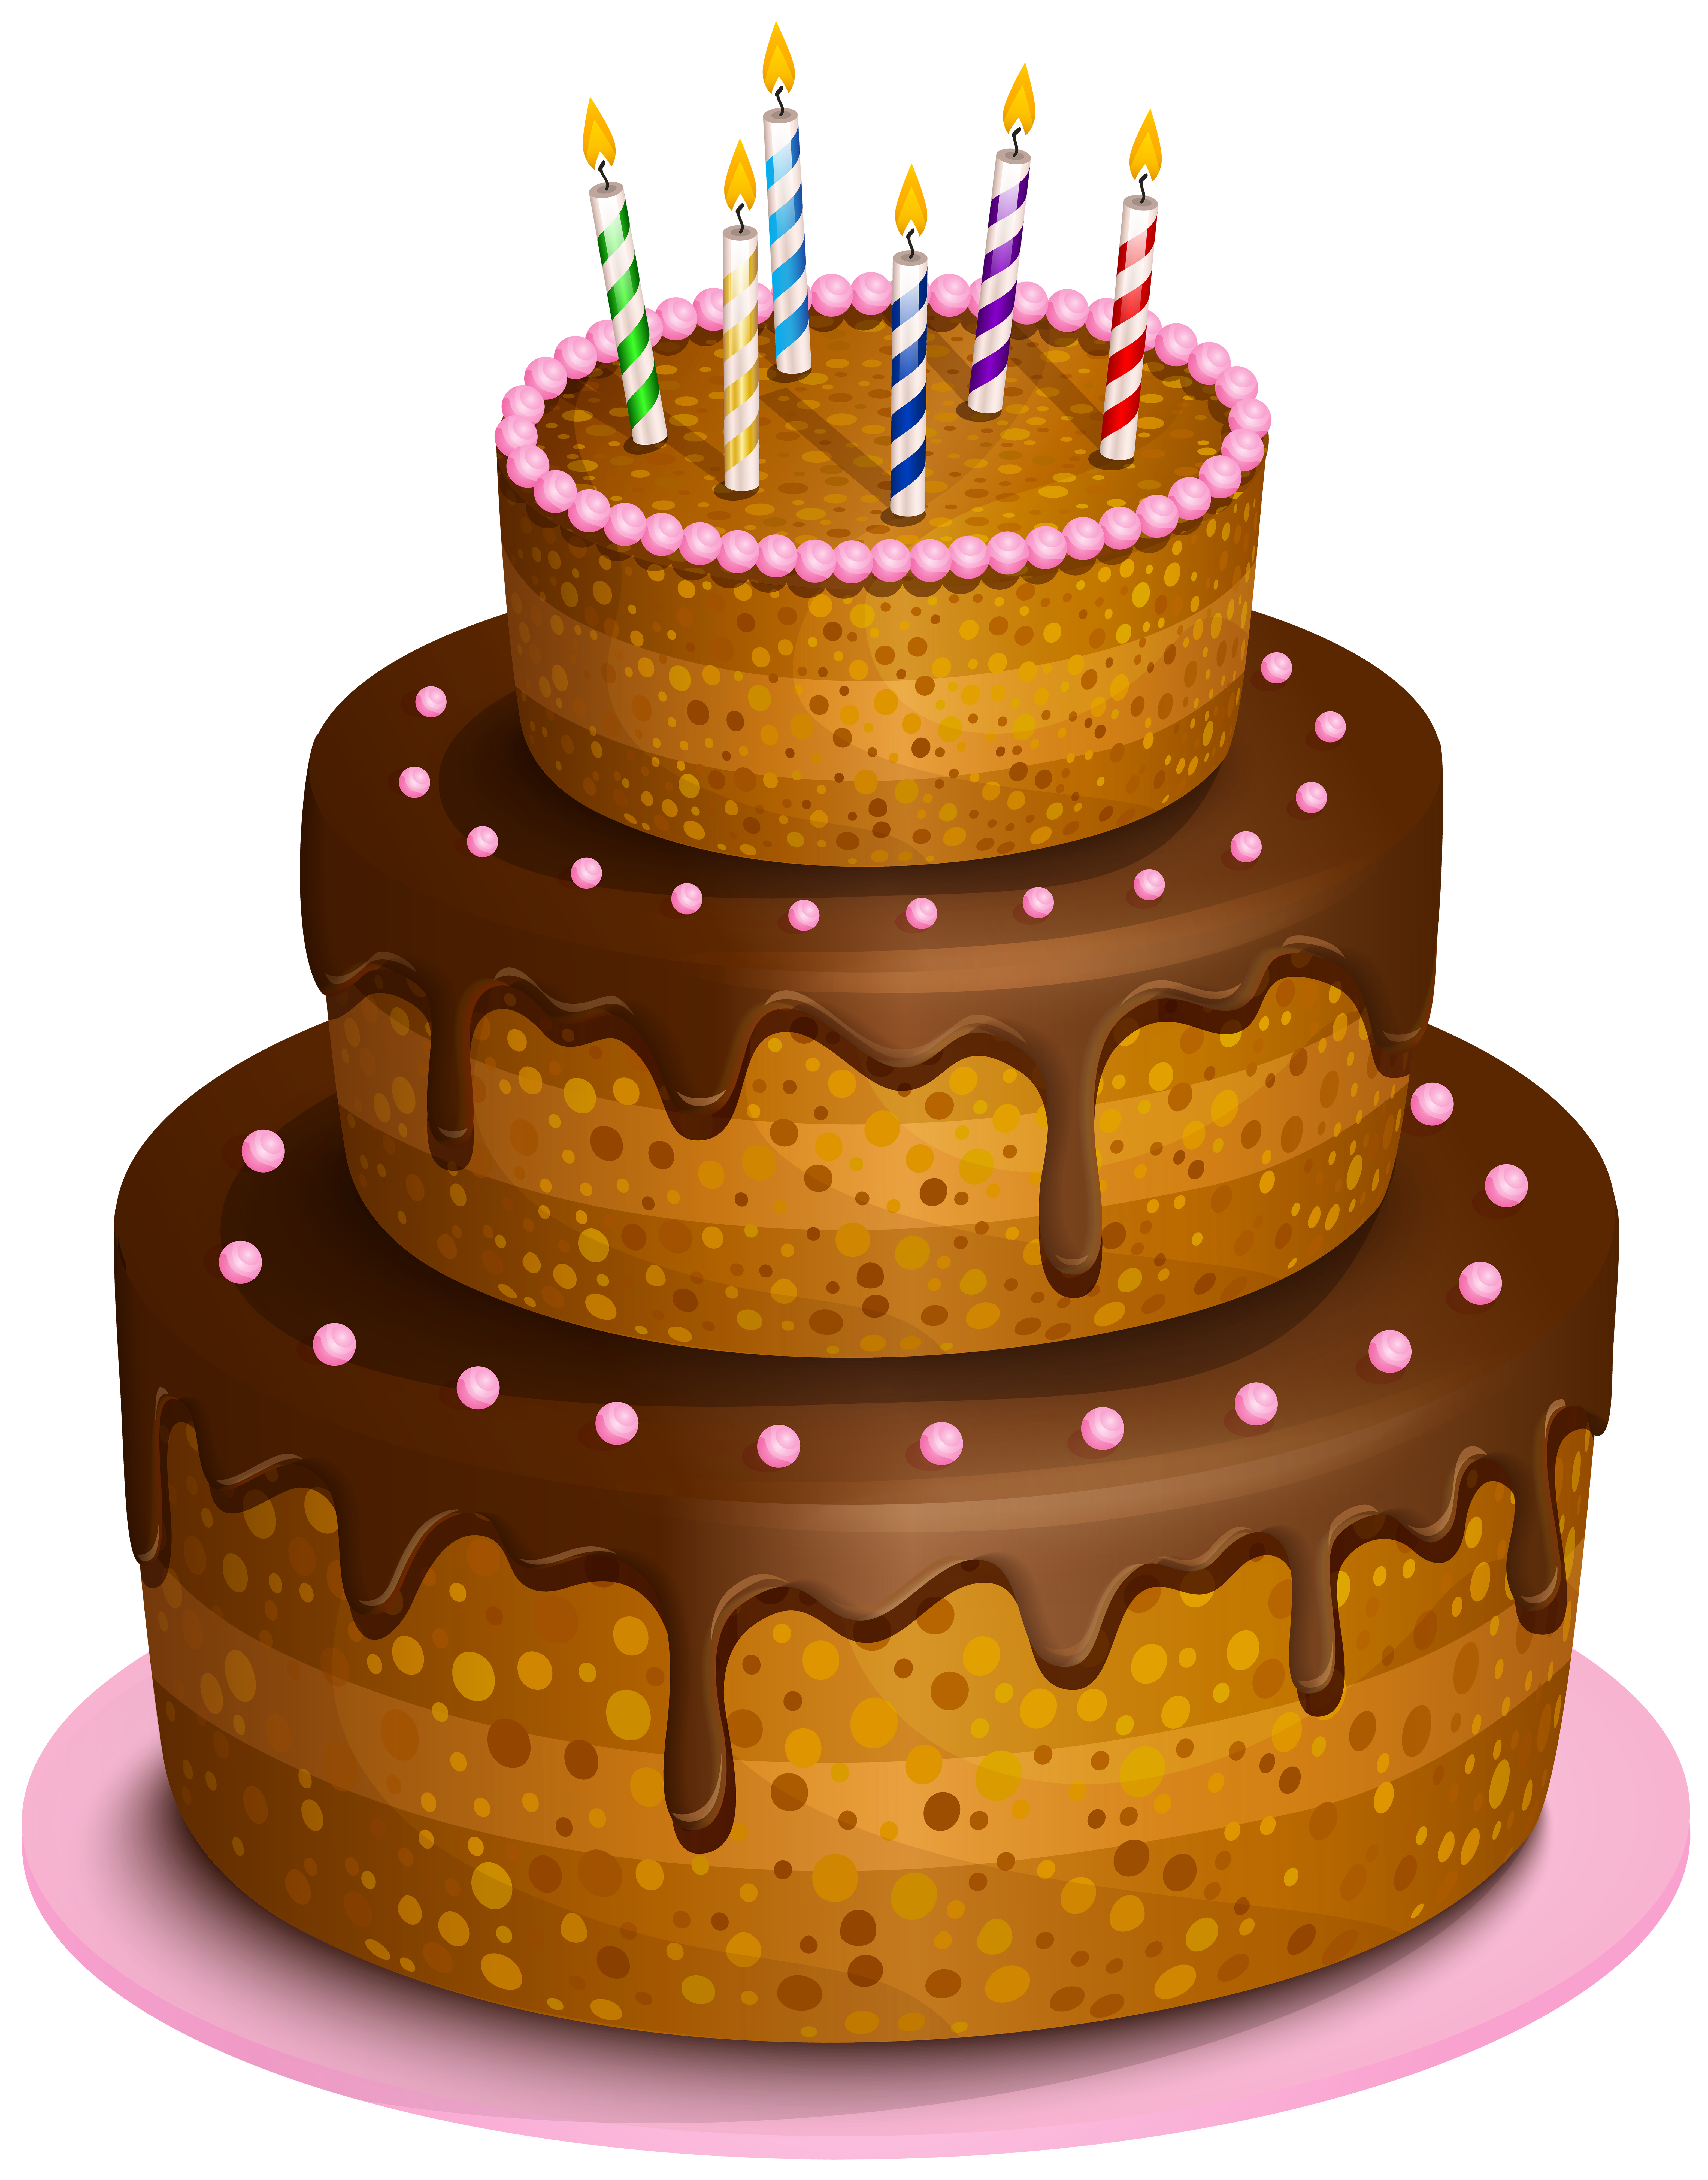 Birthday Cake Transparent PNG Clip Art Image.